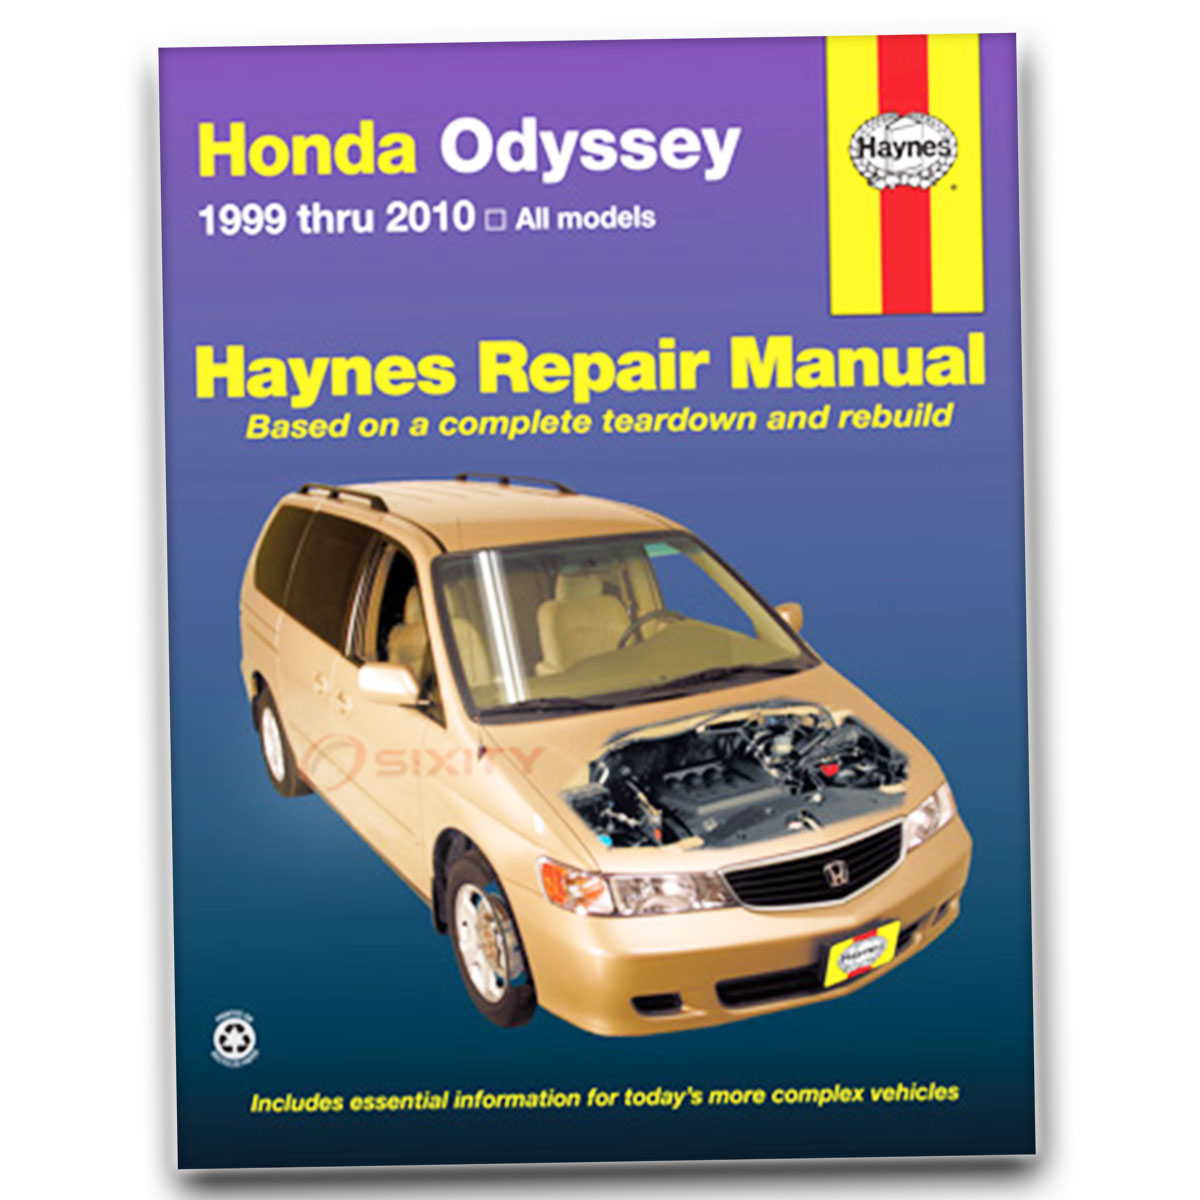 Haynes Repair Manual 42035 for Honda Odyssey 99-10 Shop Service Garage Book  hb